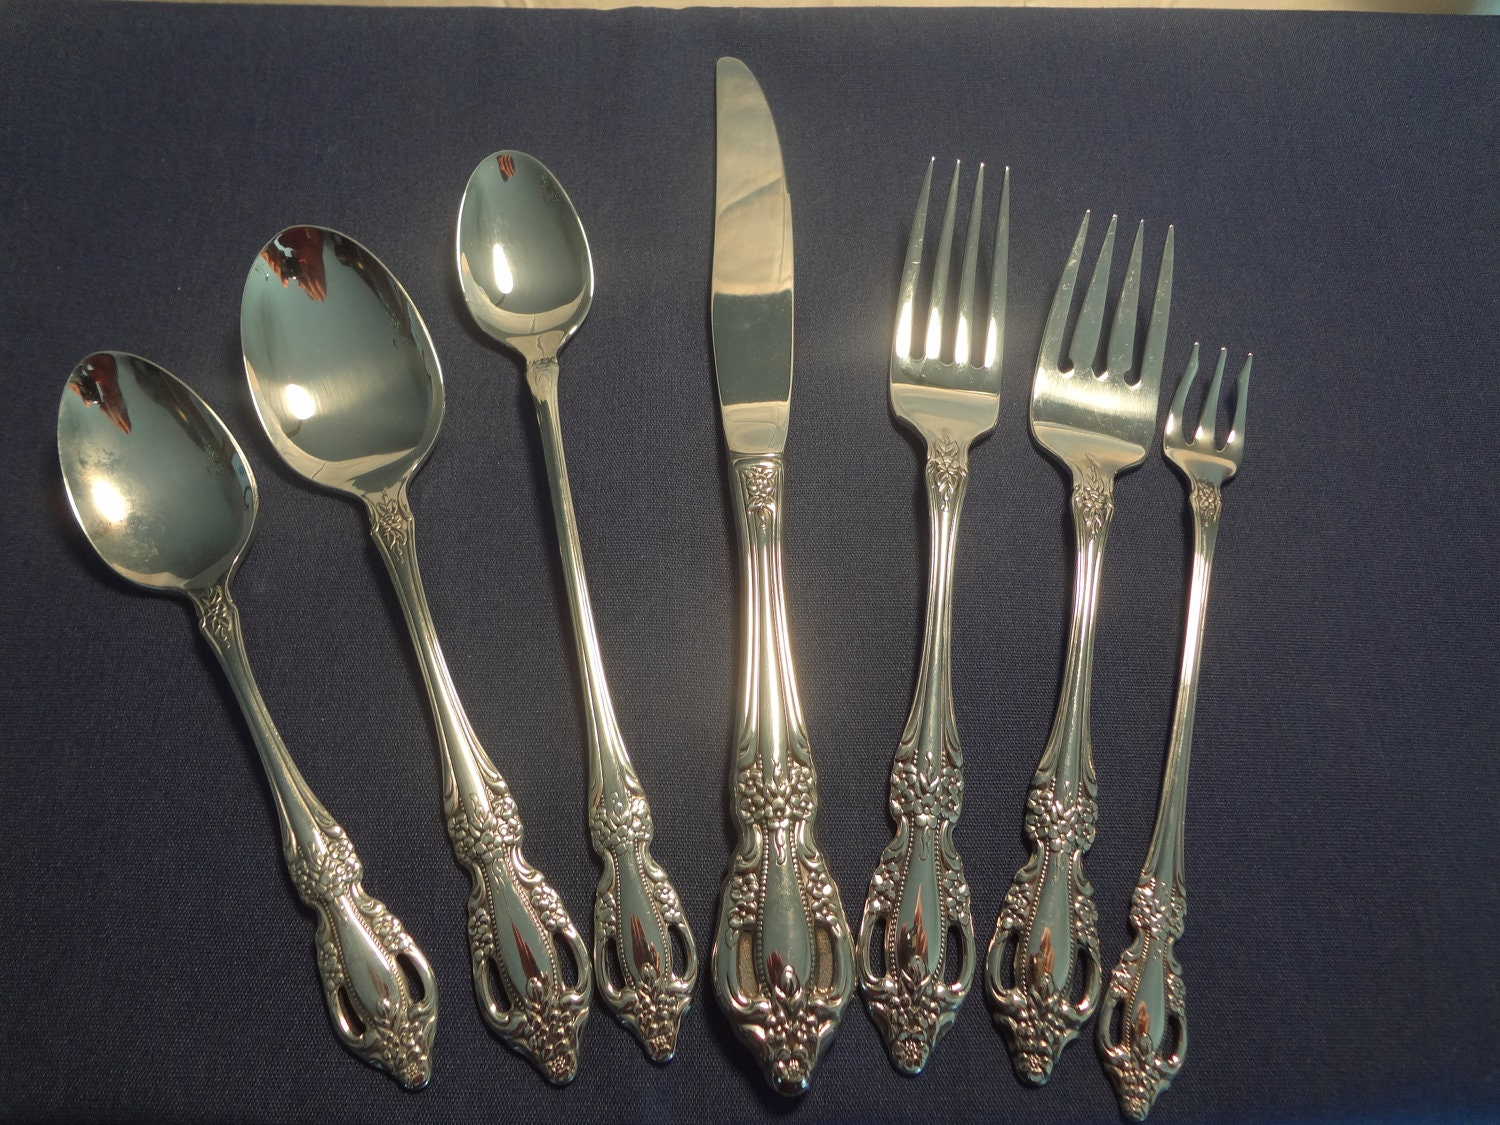 Oneida Flatware Joann Pattern | House Design